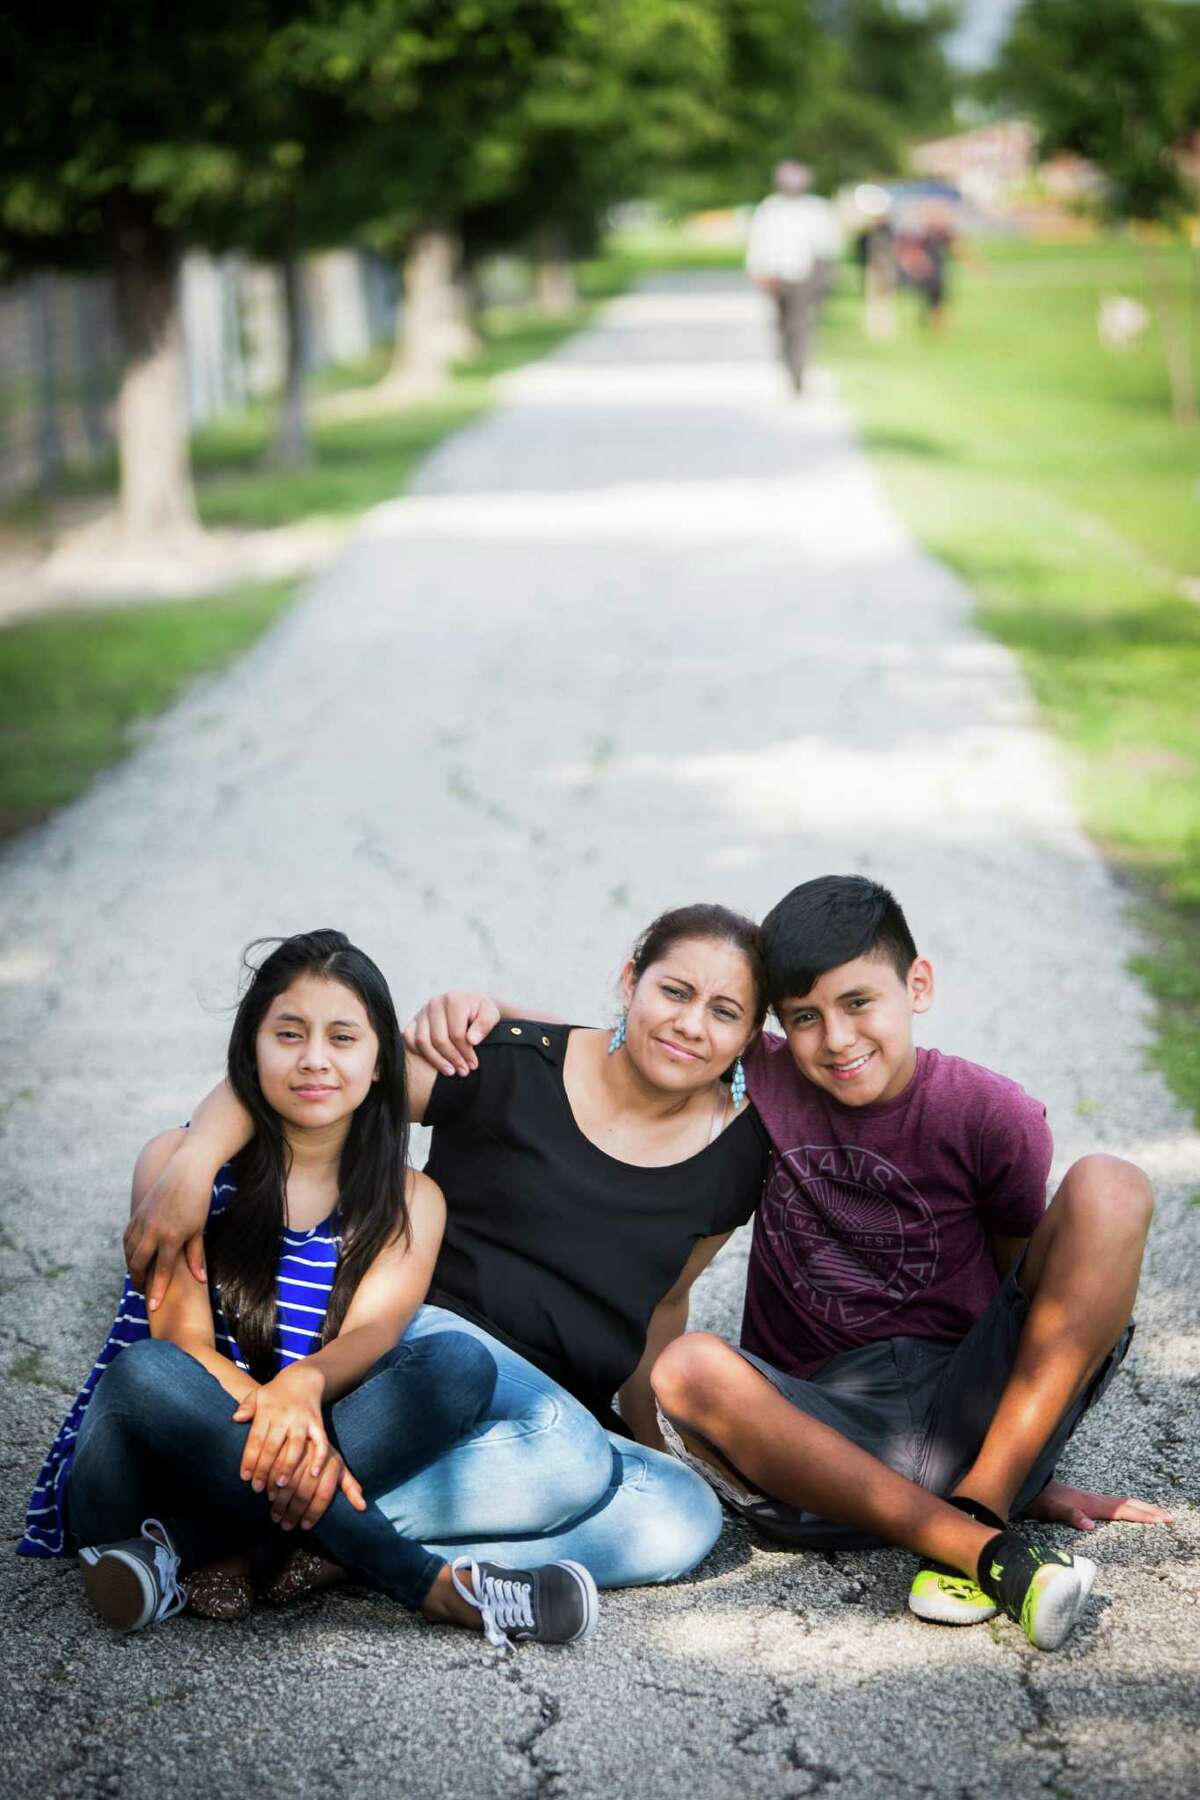 Patricia Salazar, came to the United States from Honduras eight years ago to seek a better future for her children, Linneth, 13, left, and Maykol, 14.